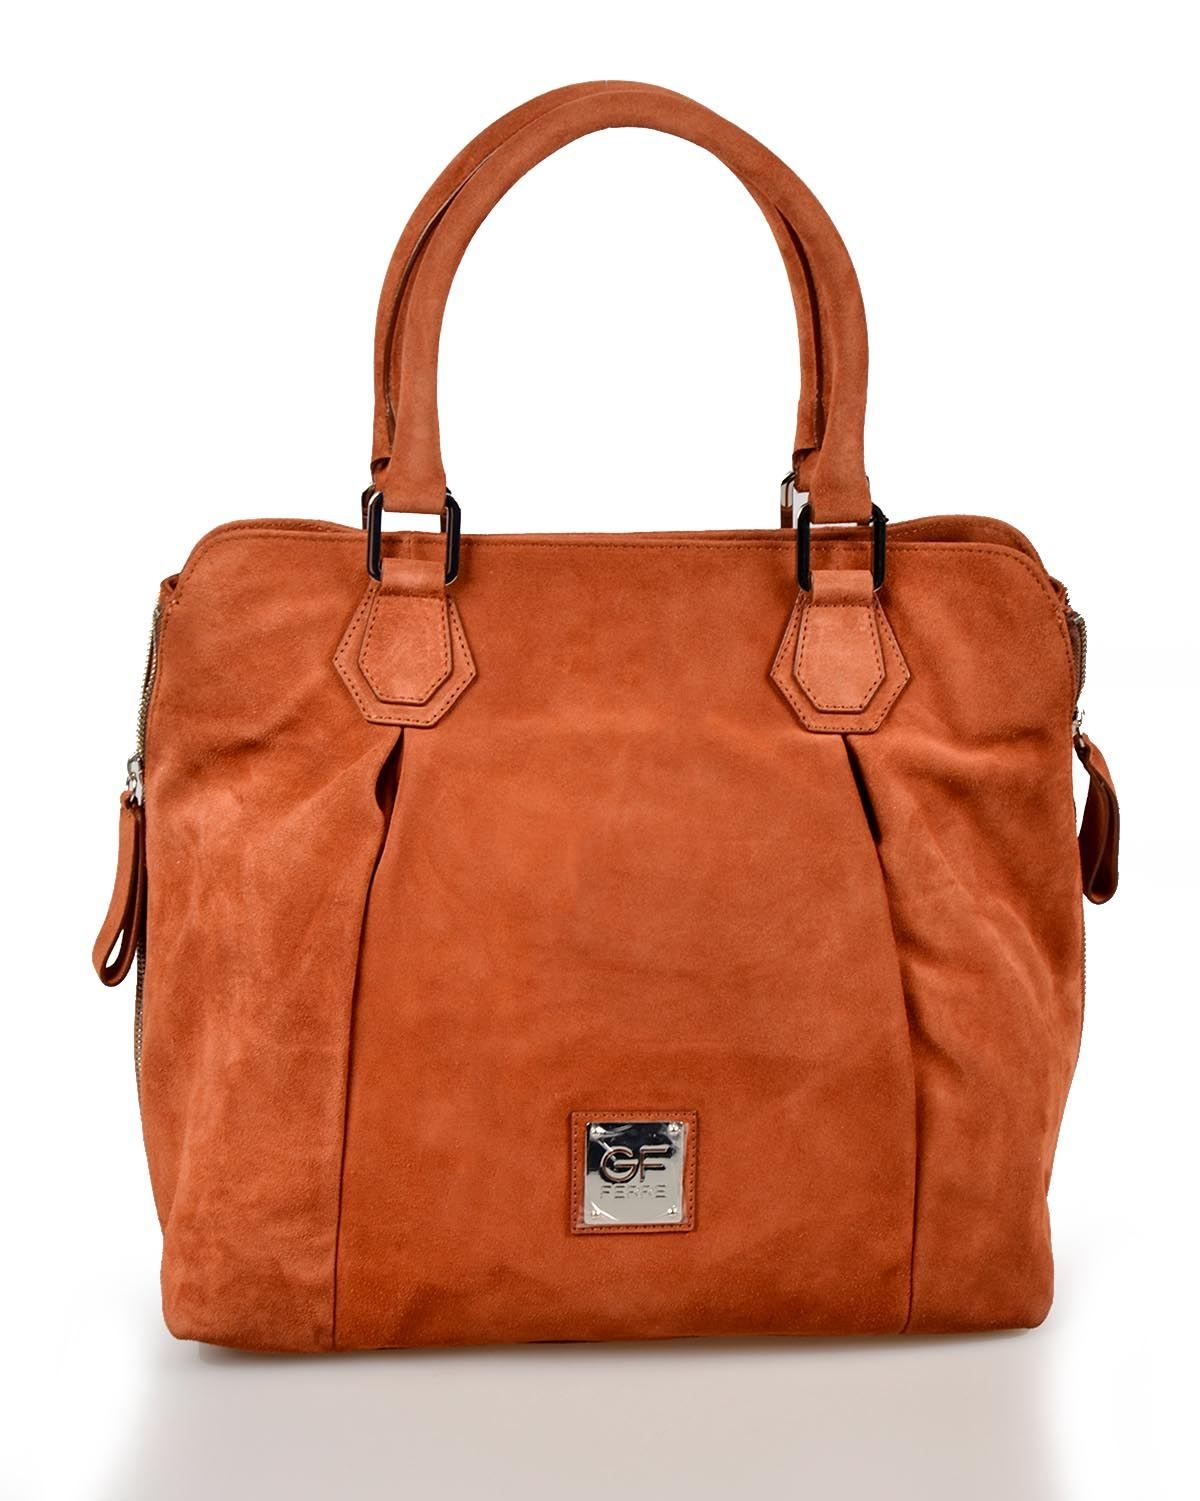 GF Ferre Tote for $145 at Modnique.com.